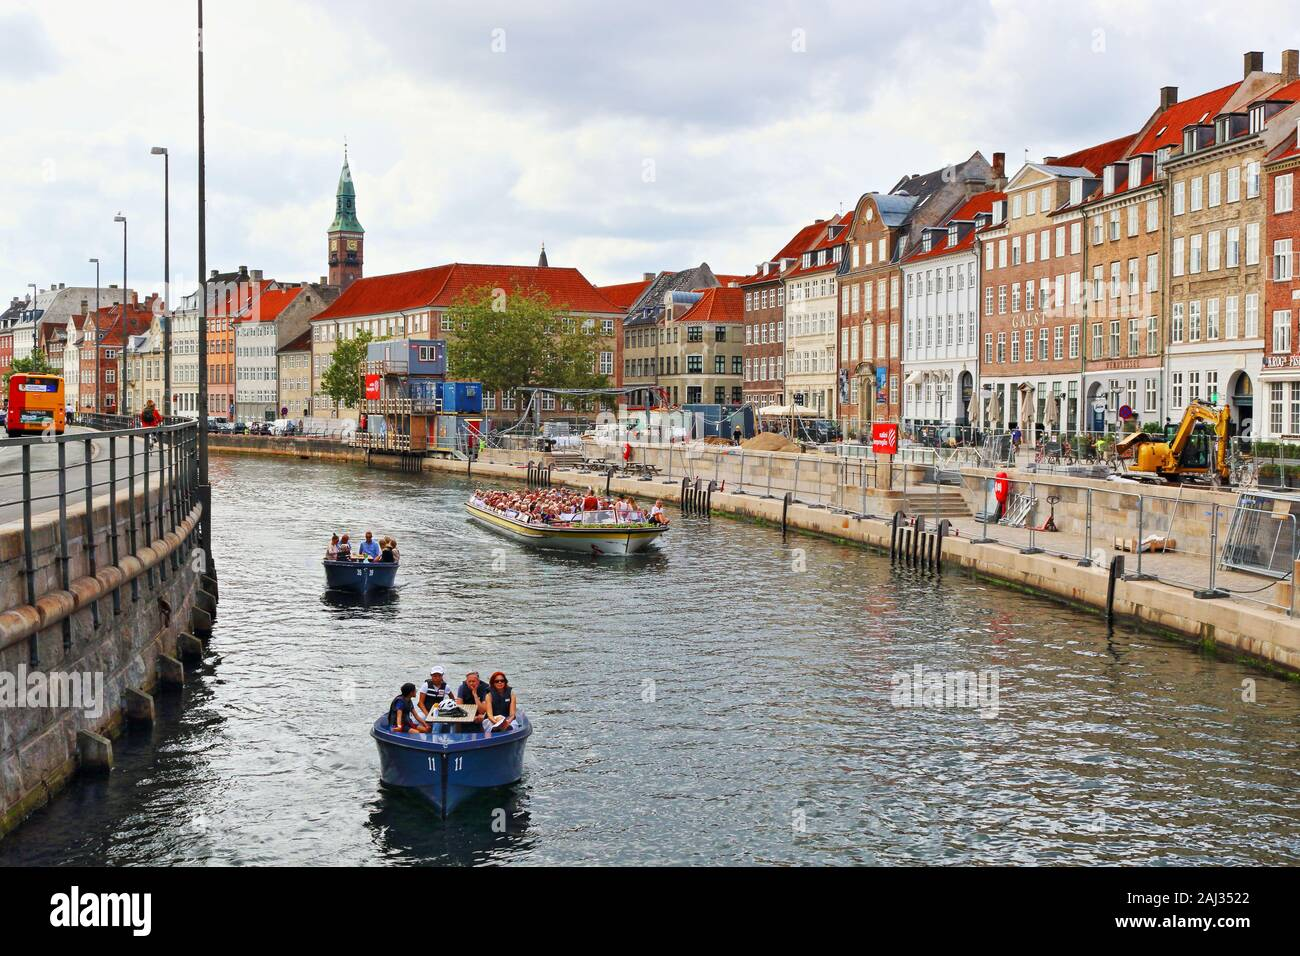 Sightseeing tour boats on a Slotsholmen canal and  Gammel Strand street lined by a row of brightly coloured old houses in downtown Copenhagen,Denmark Stock Photo